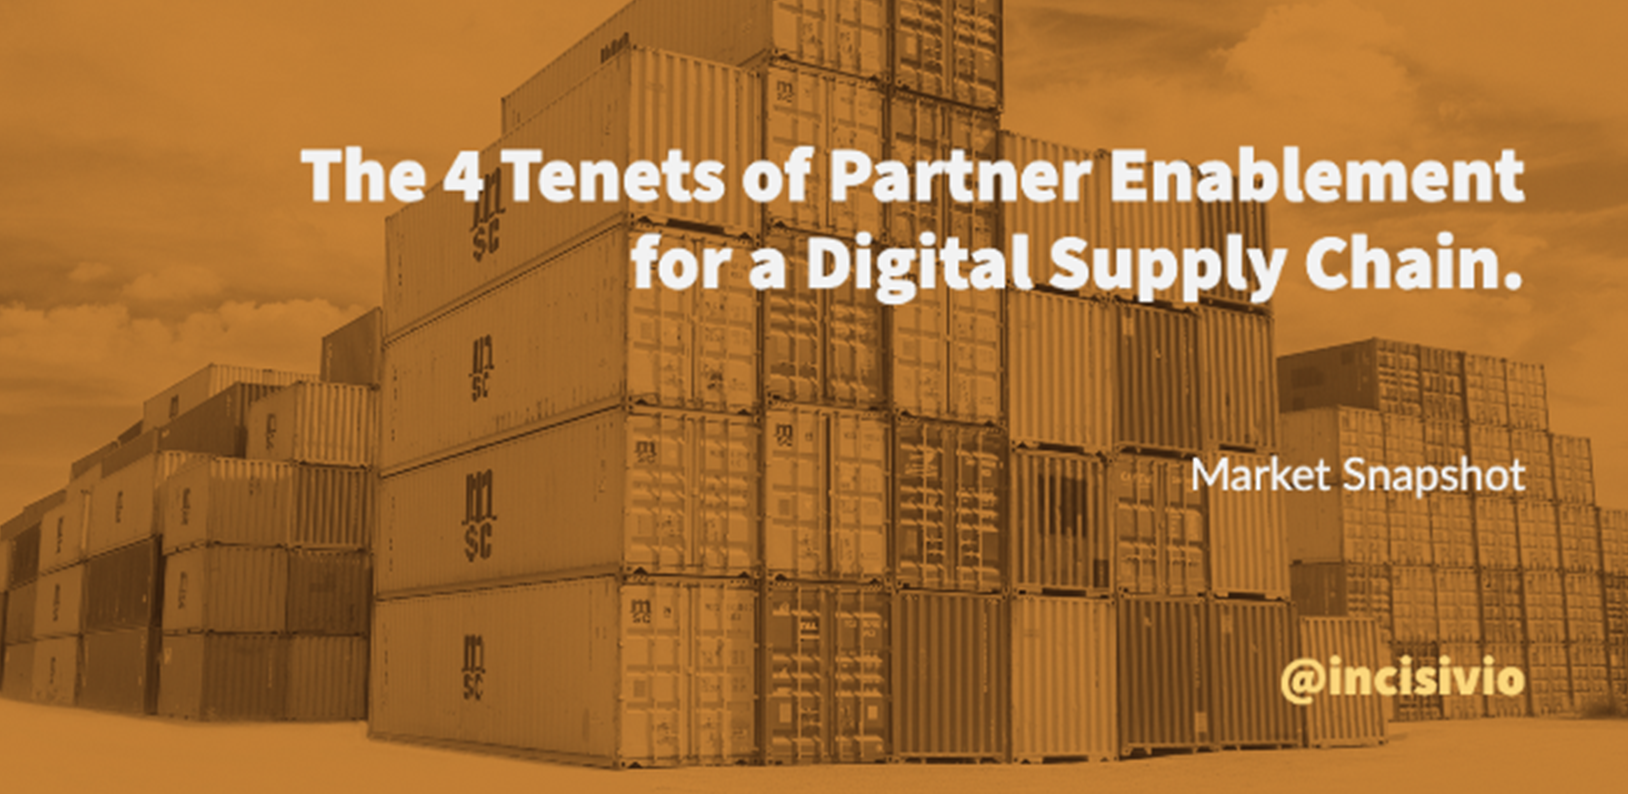 The 4 Tenets of Partner Enablement for a Digital Supply Chain